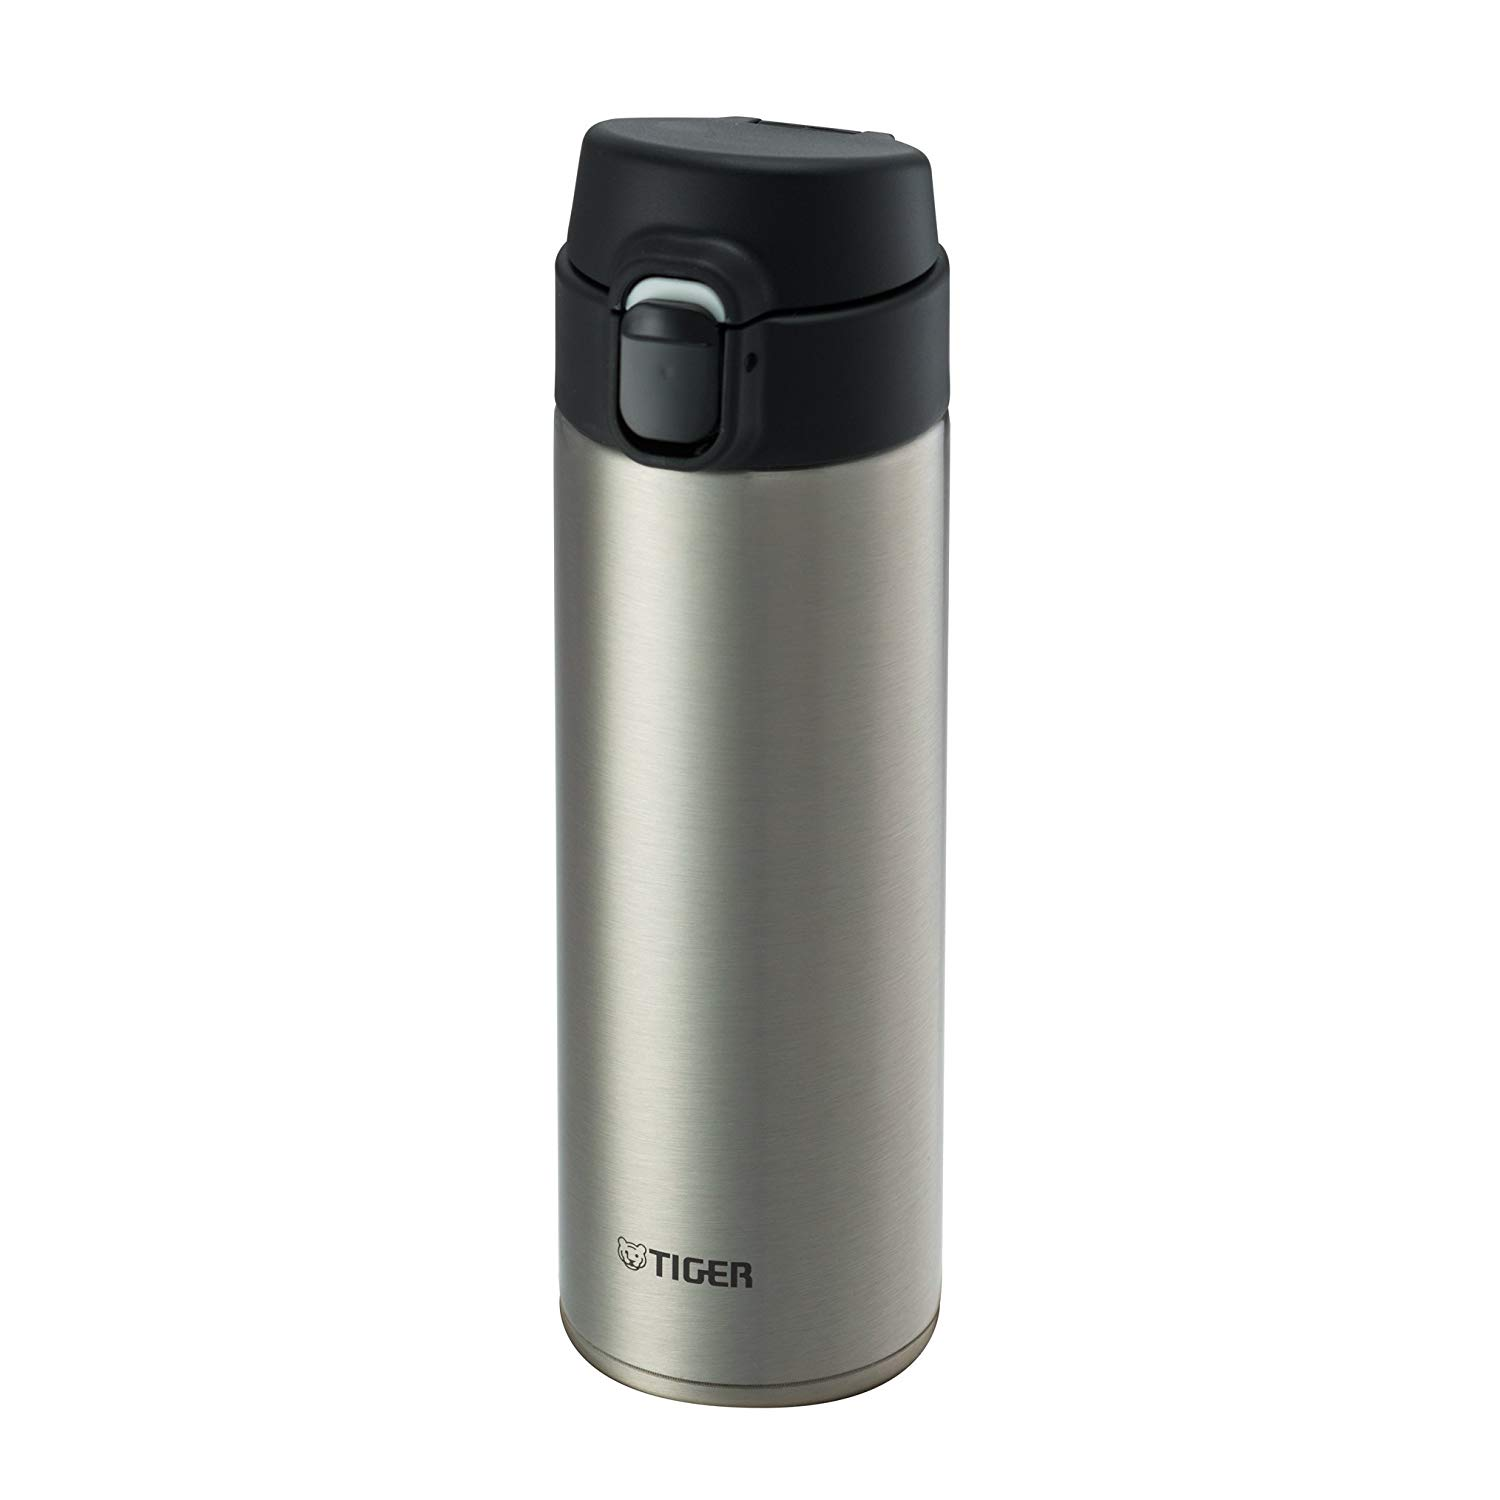 Tiger MMY-A048 Vacuum Insulated Stainless Steel Travel Mug